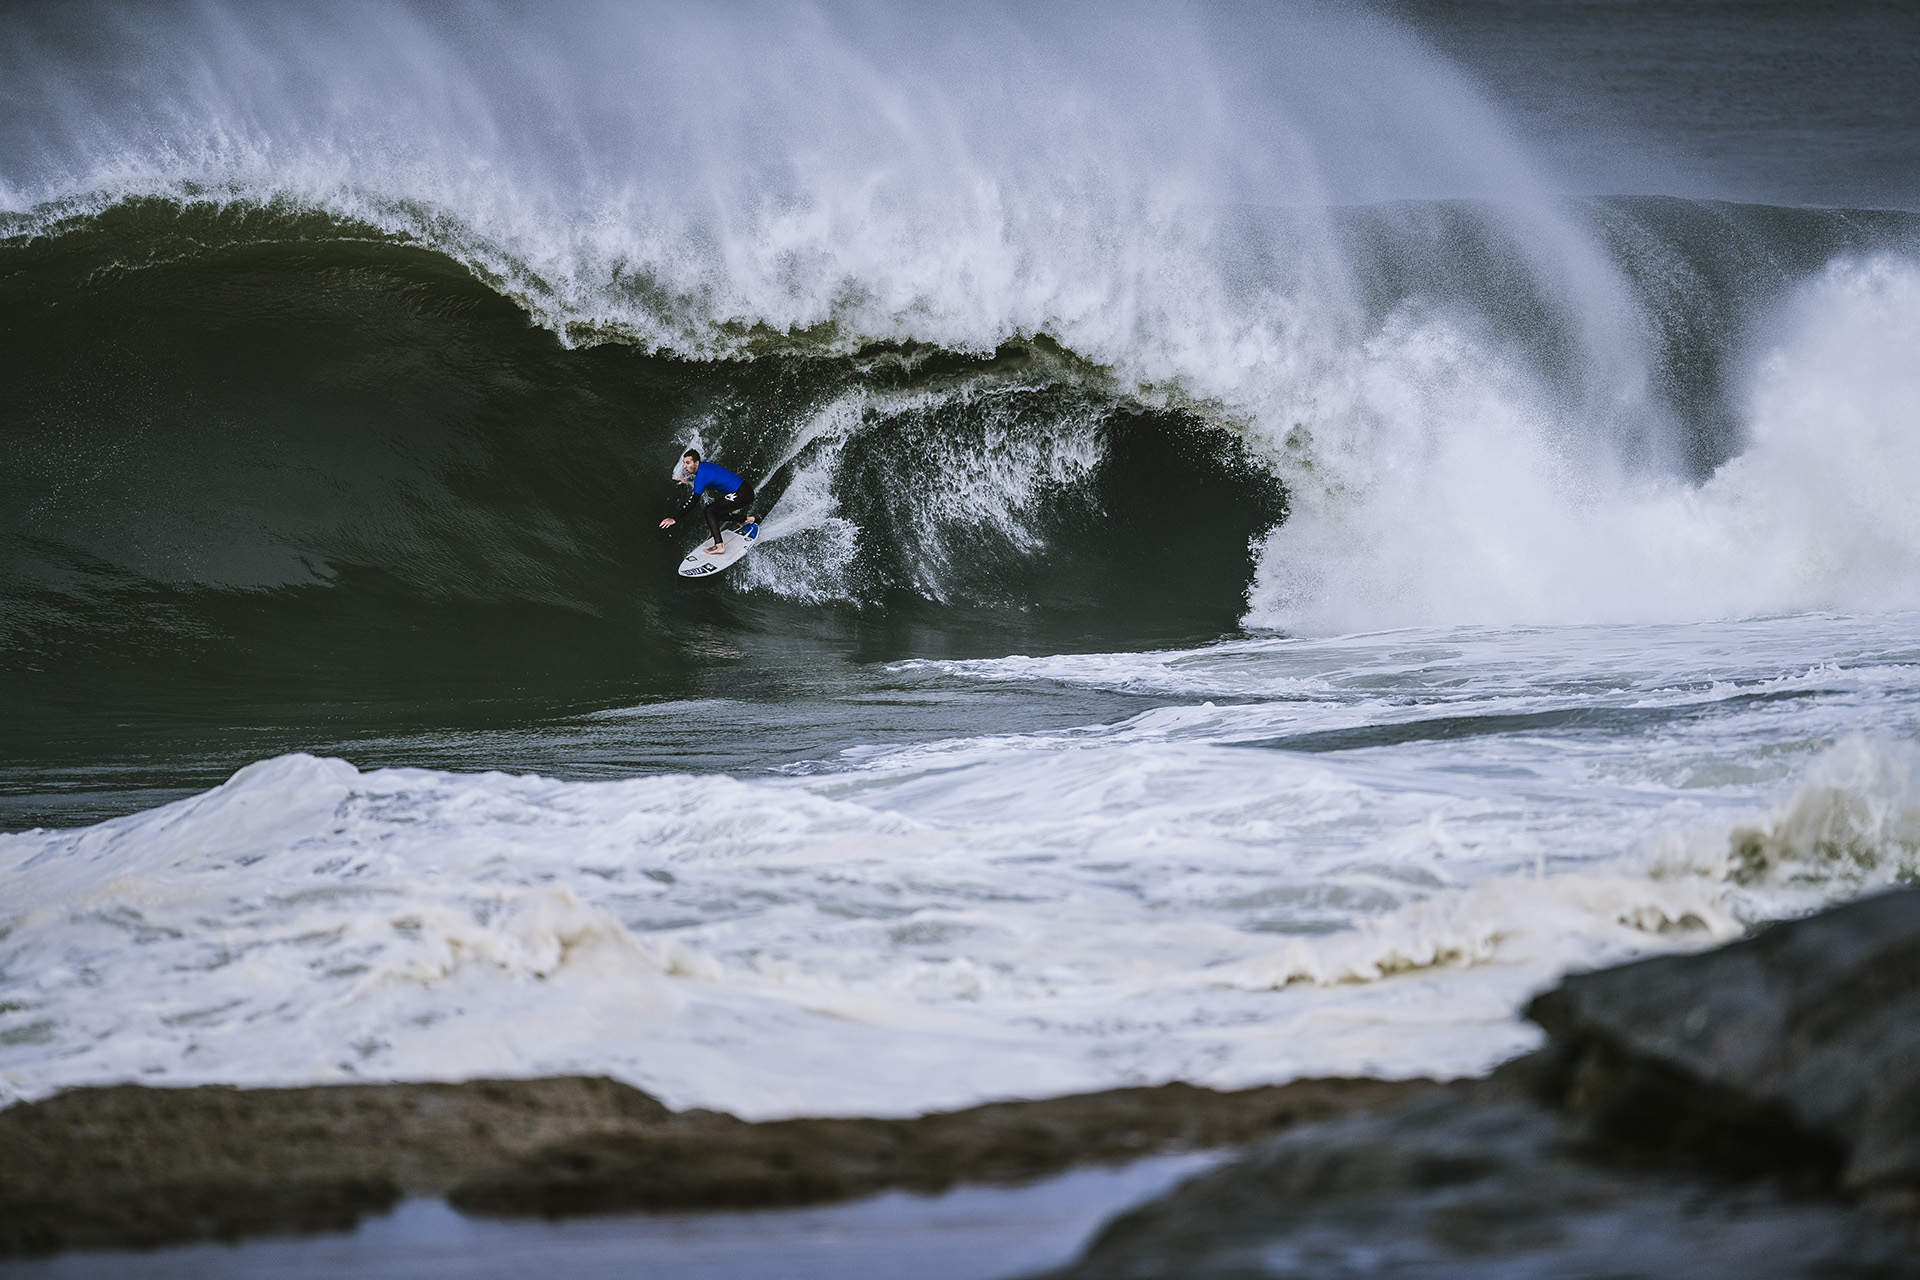 Evan Faulks performs during the Red Bull Cape Fear event in Sydney, Australia on June 6, 2016. // Brett Hemmings / Red Bull Content Pool // P-20160606-00725 // Usage for editorial use only // Please go to www.redbullcontentpool.com for further information. //